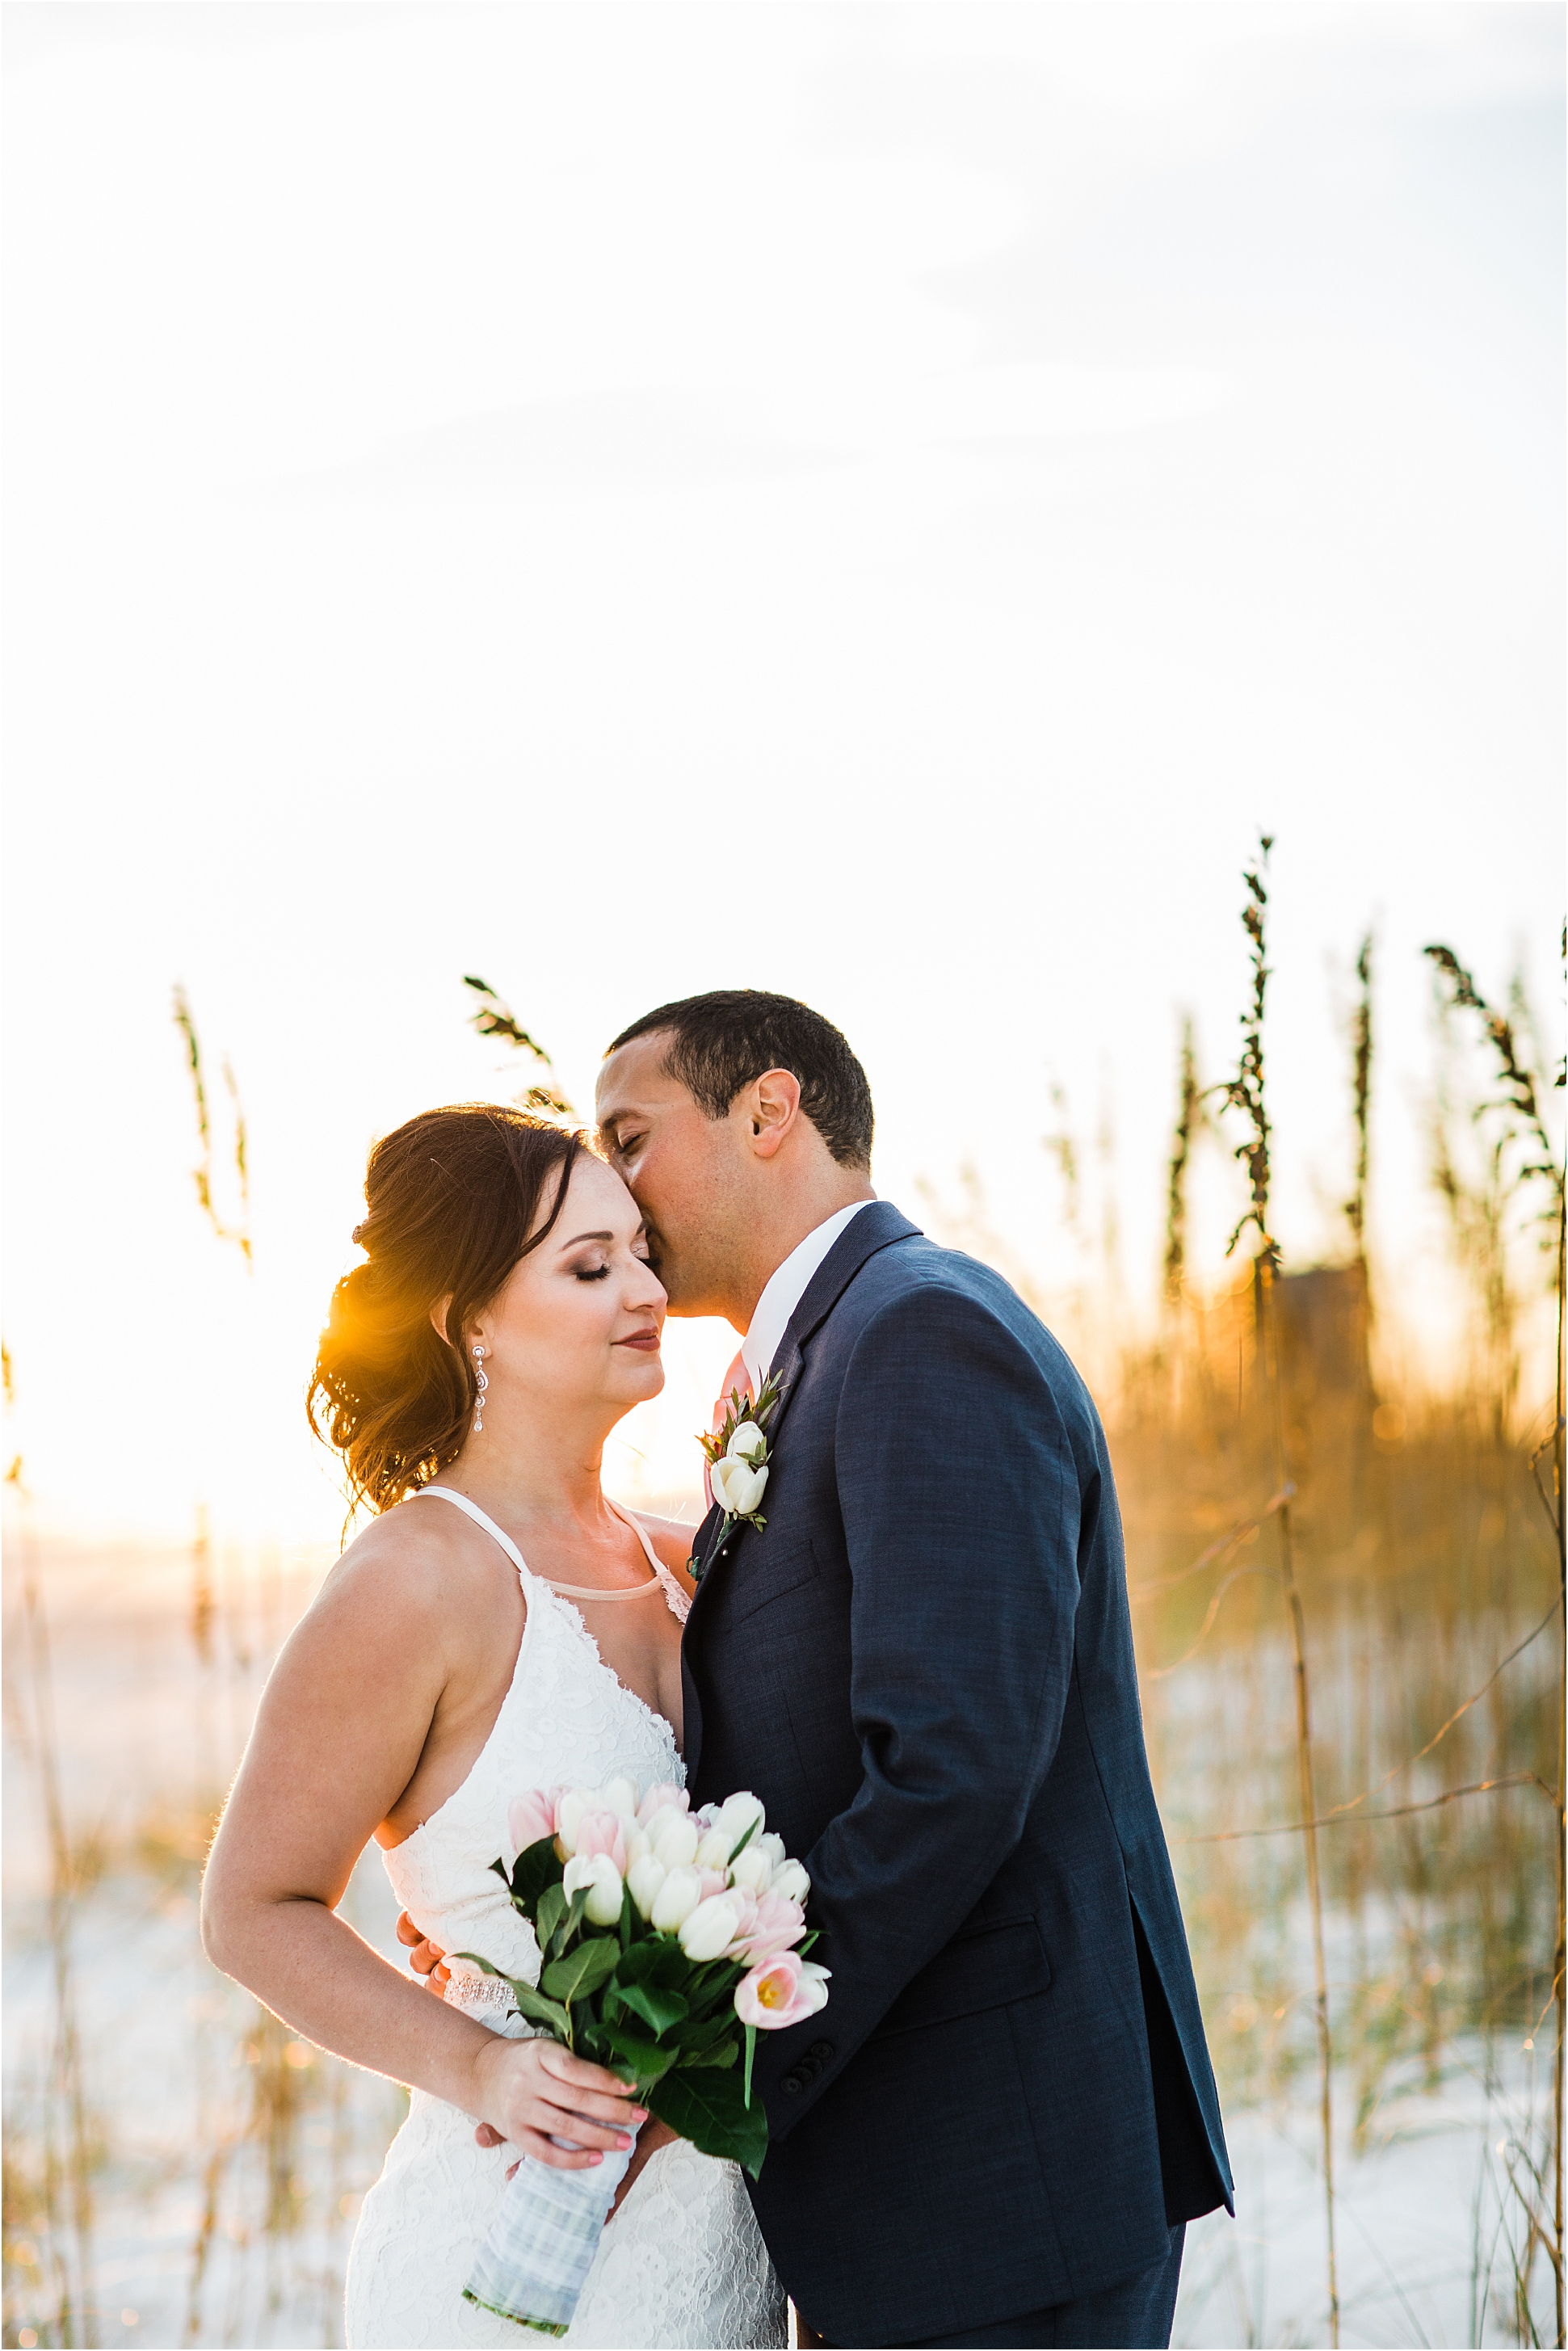 Wedding Ceremonies and Reception Packages in Gulf Shores